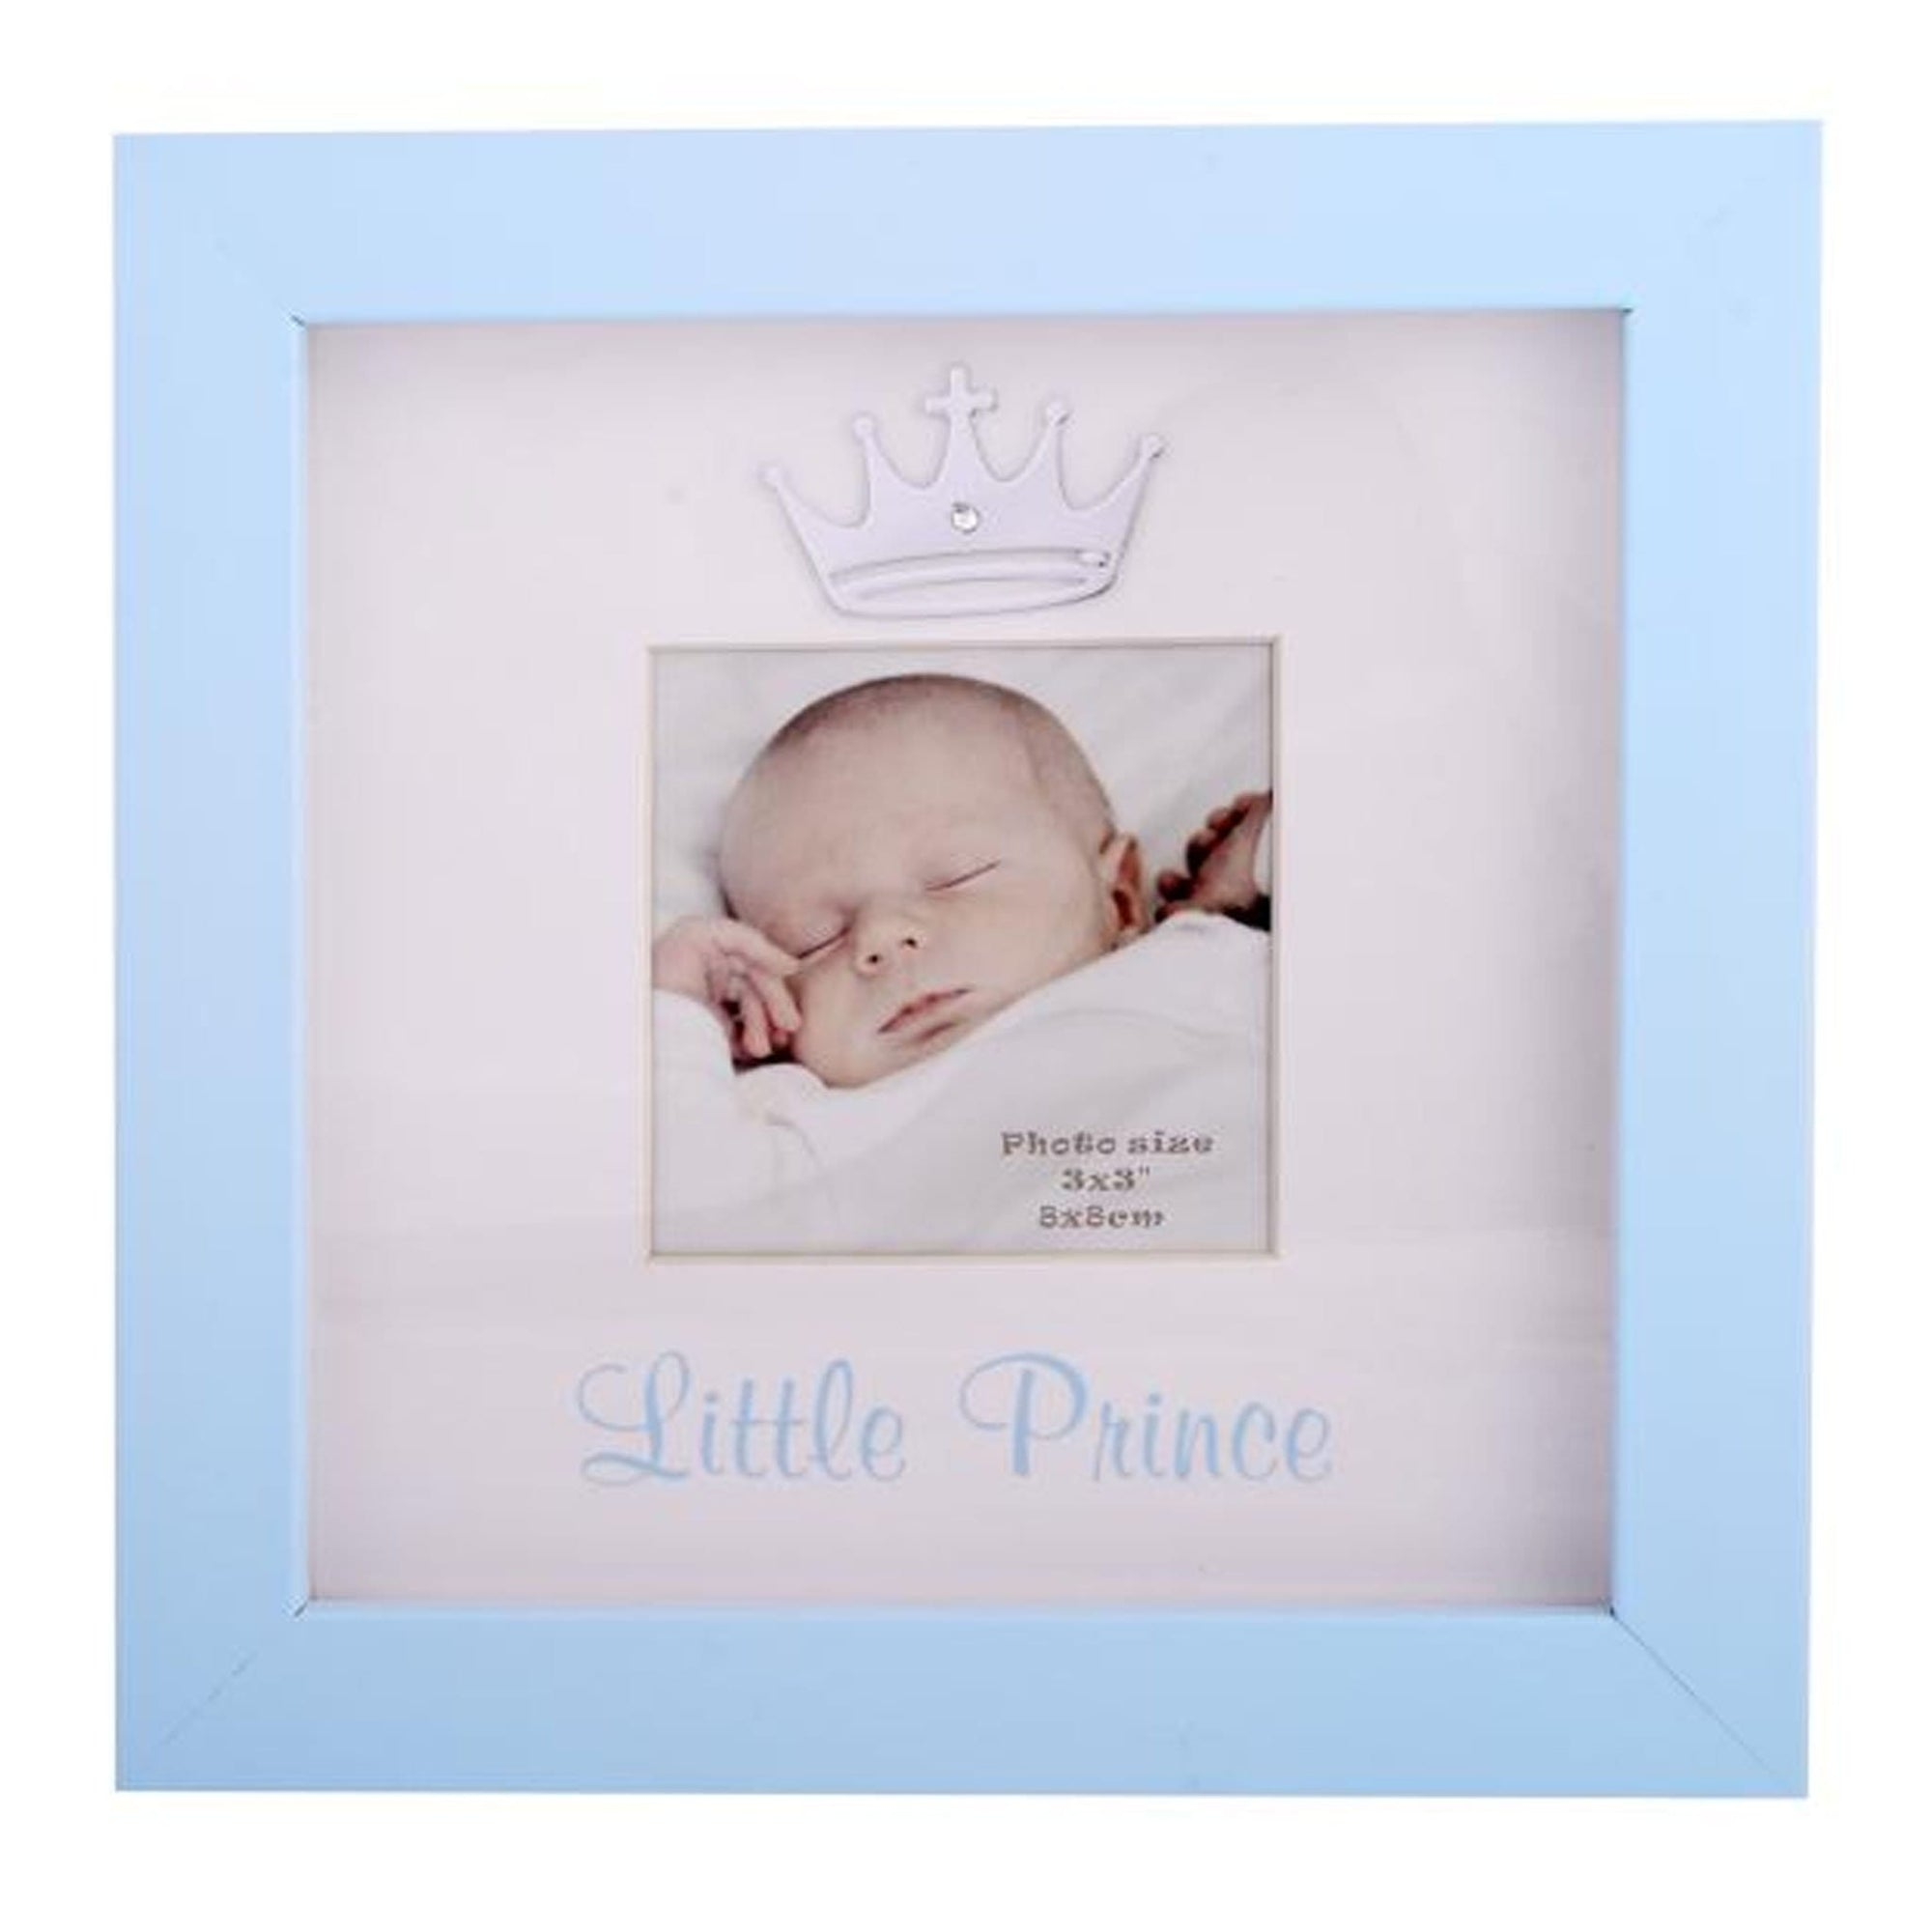 Box Frame Little Prince 3x3